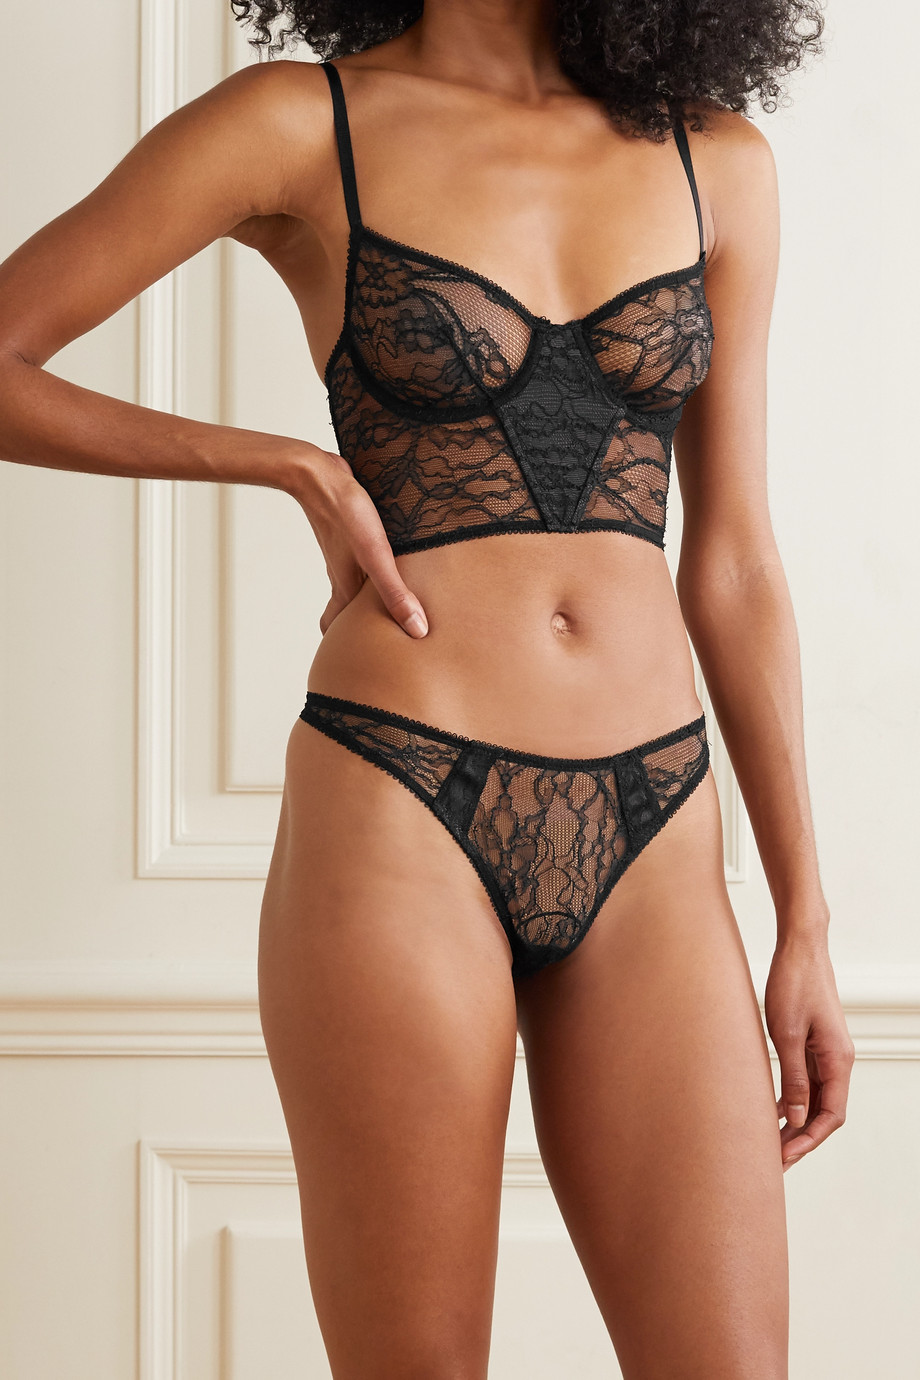 unknown Nuit corded lace and mesh thong